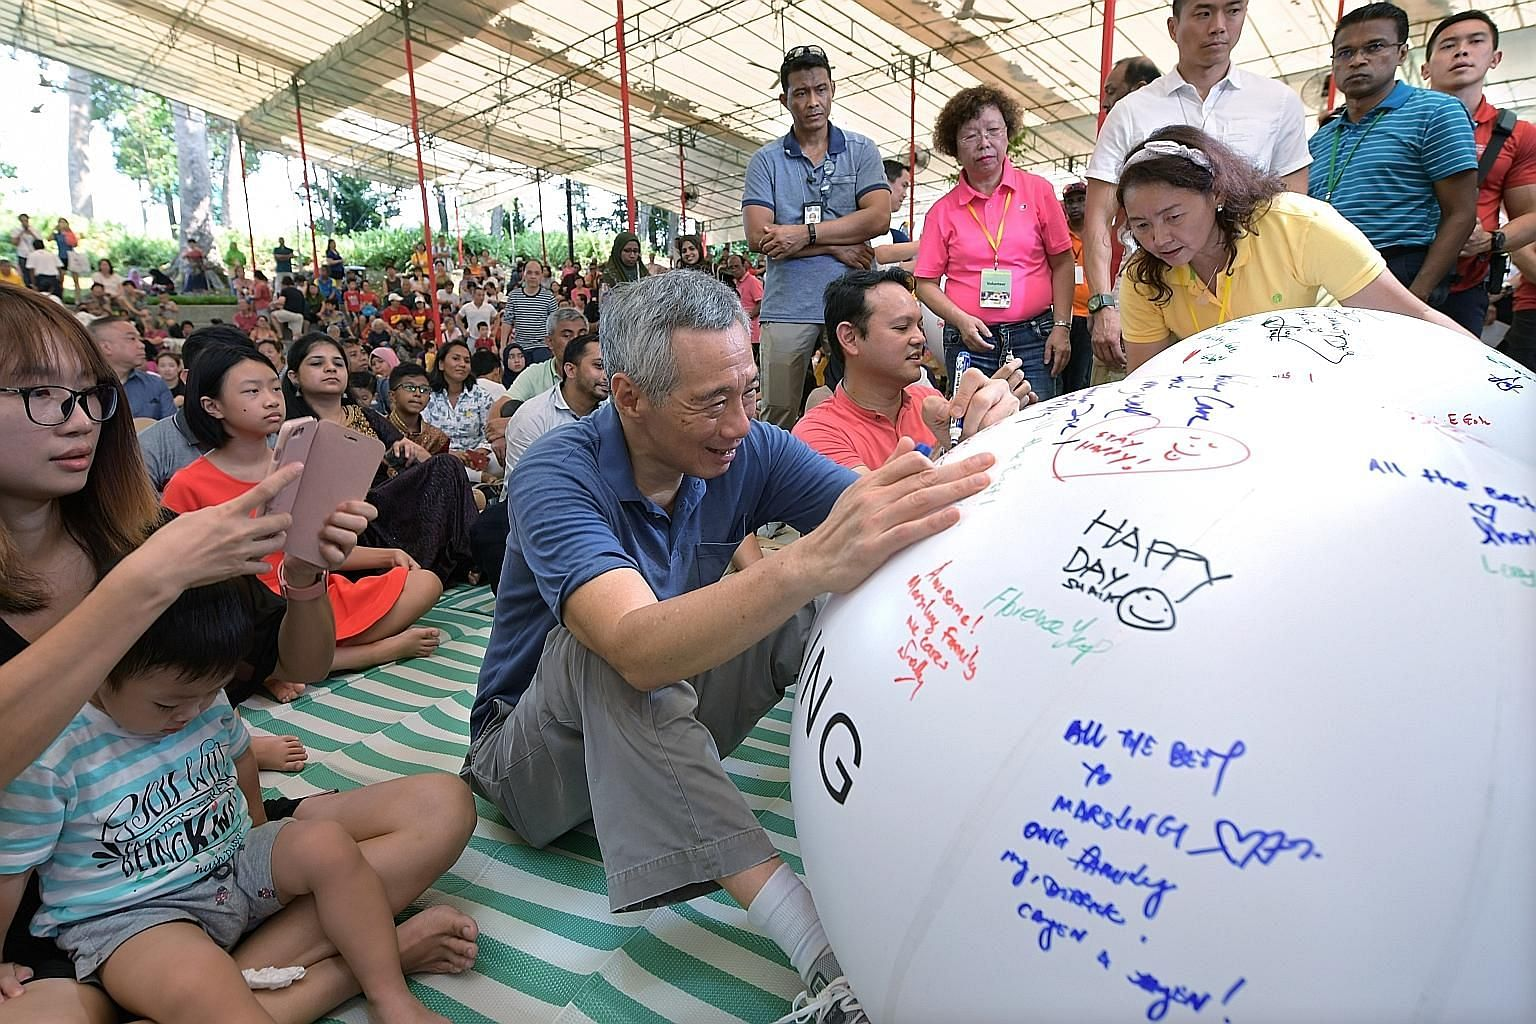 Prime Minister Lee Hsien Loong and Minister of State for National Development and Manpower Zaqy Mohamad penning their best wishes at the annual Marsiling Community Day yesterday, when the Marsiling Cares initiative was launched.